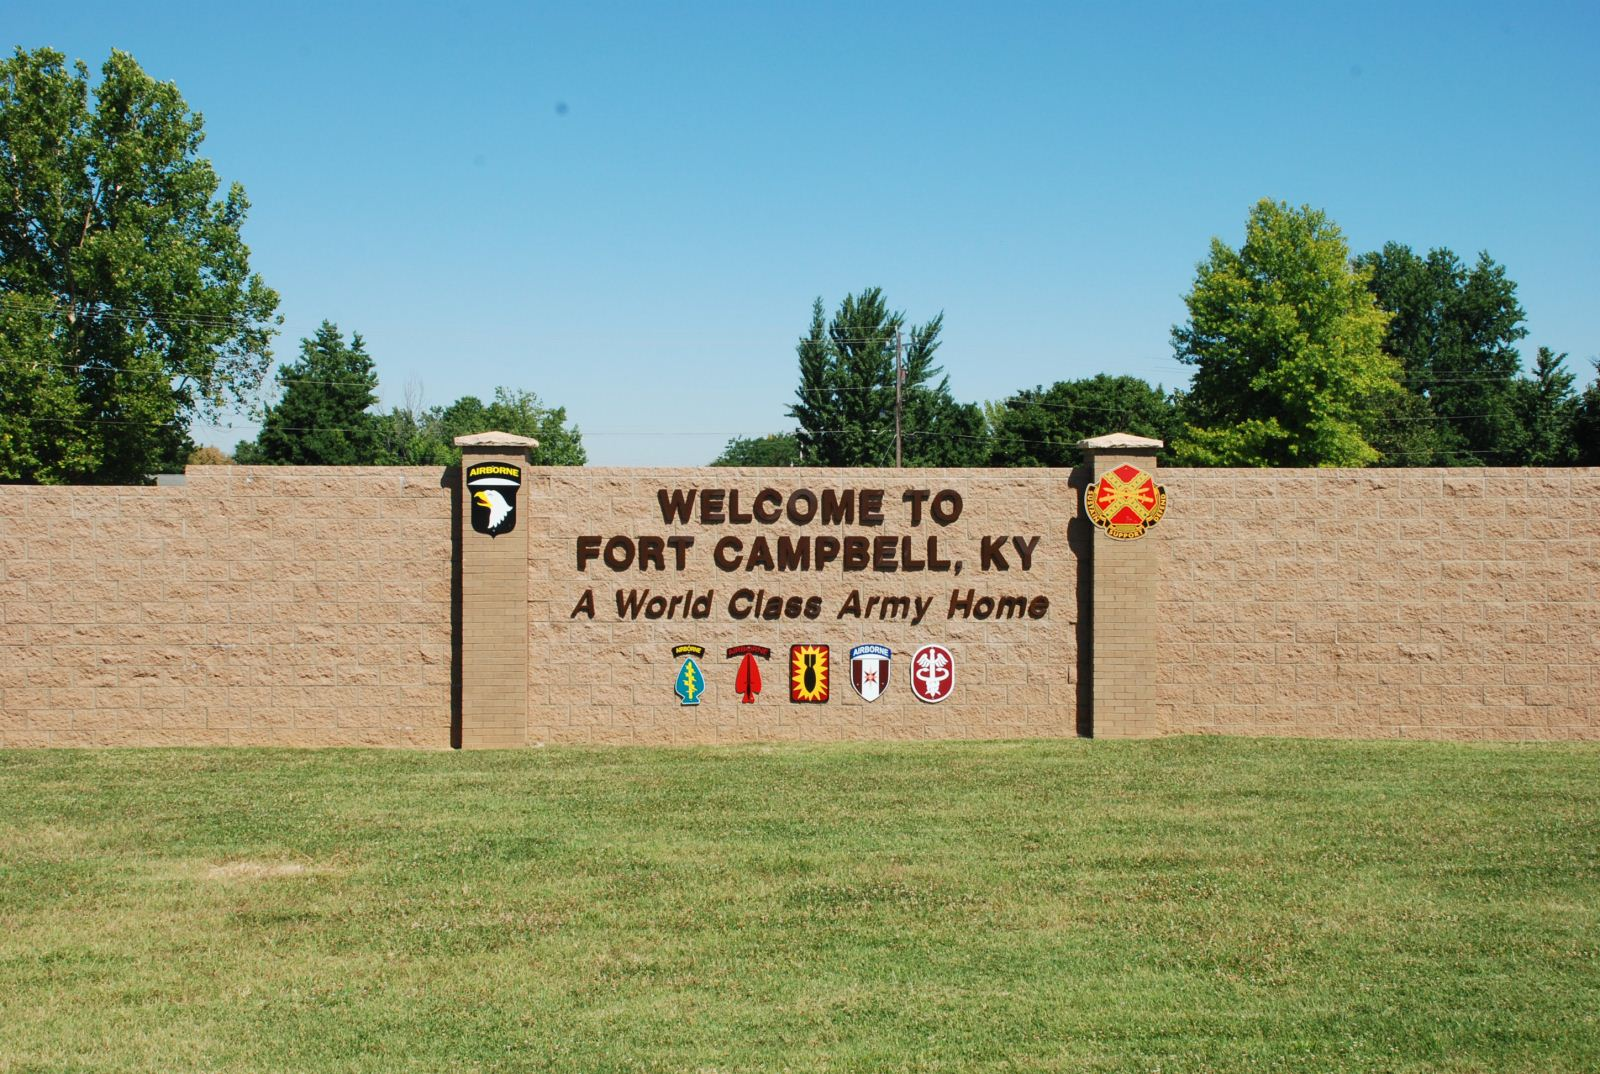 fort campbell The latest tweets from fort campbell mwr (@fortcampbellmwr) official twitter of fort campbell mwr dod social media user agreement: rt does not equal endorsements.